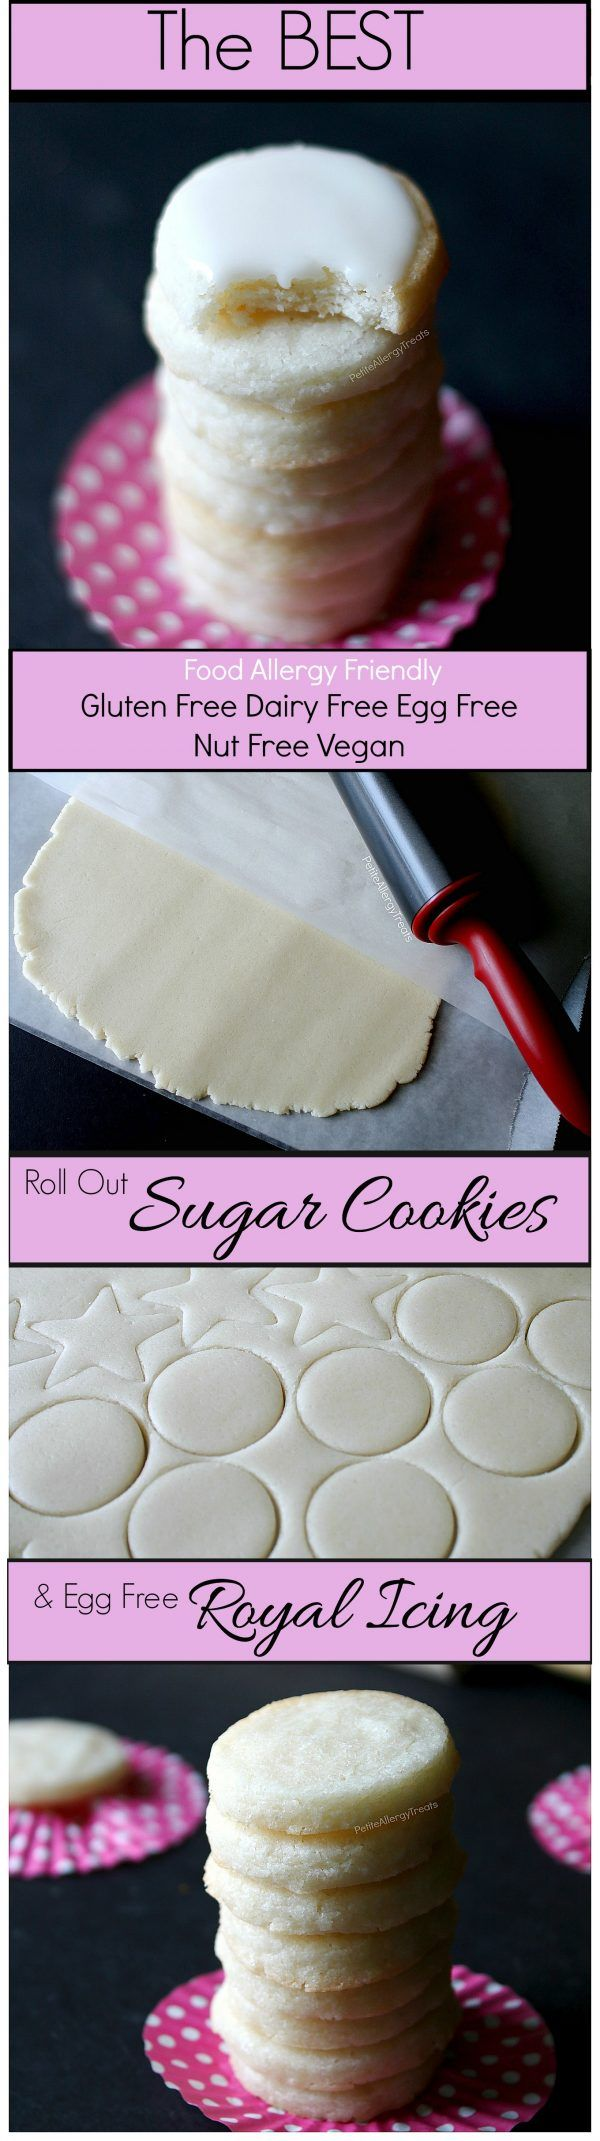 Gluten Free Sugar Cookies Recipe w/ egg free Royal Icing (Vegan dairy free egg free)